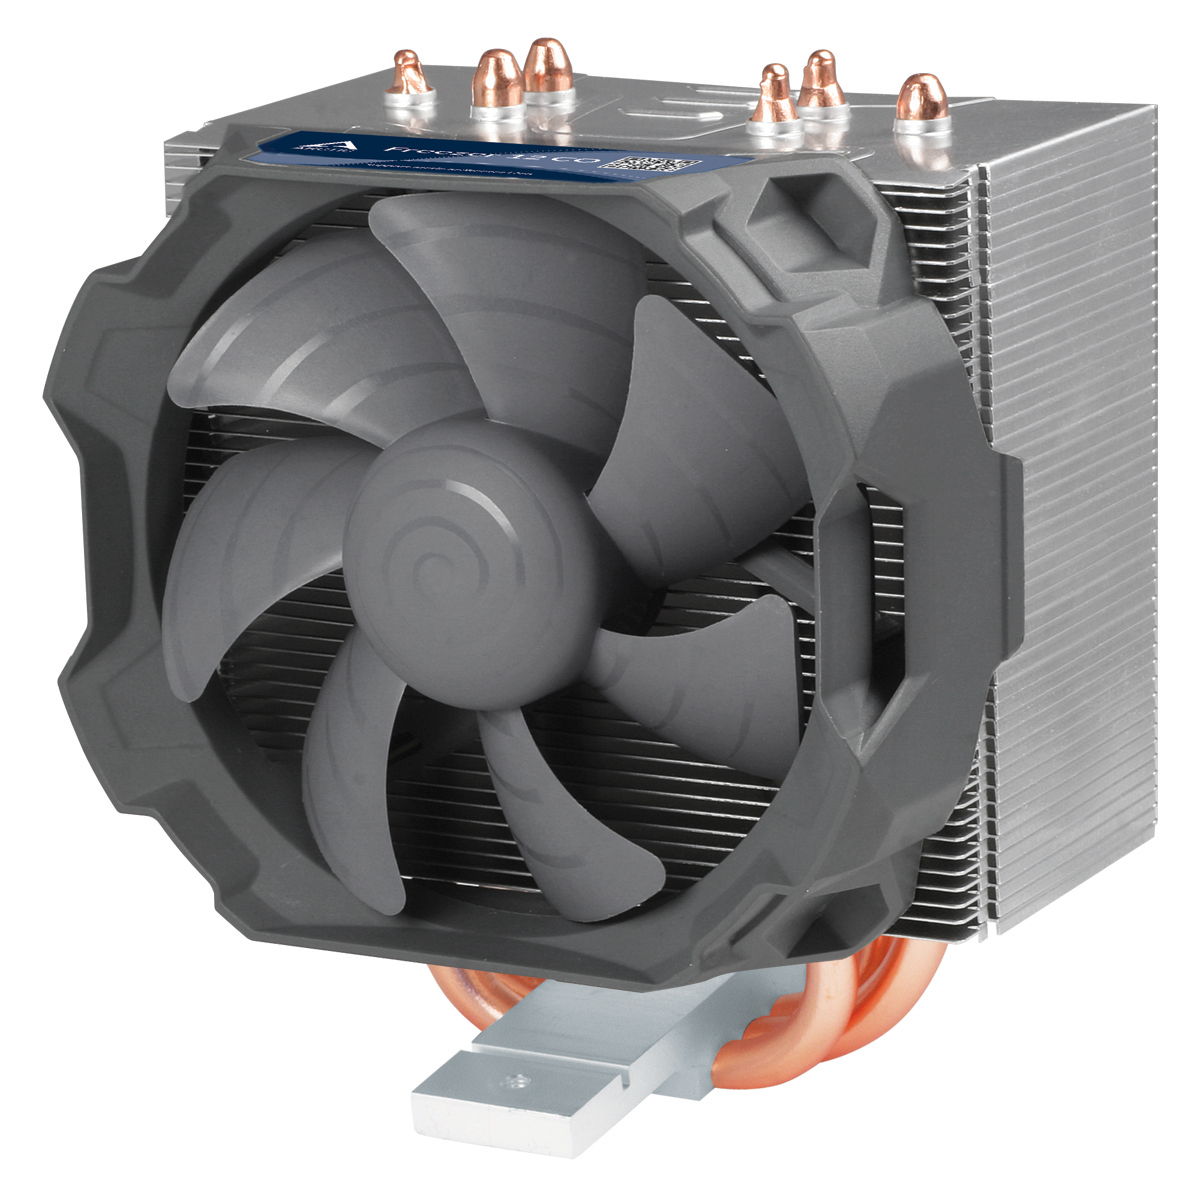 ARCTIC ACFRE00030A FREEZER 12 CO - COMPACT SEMI PASSIVE TOWER CPU COOLER FOR CONTINUOUS OPERATION